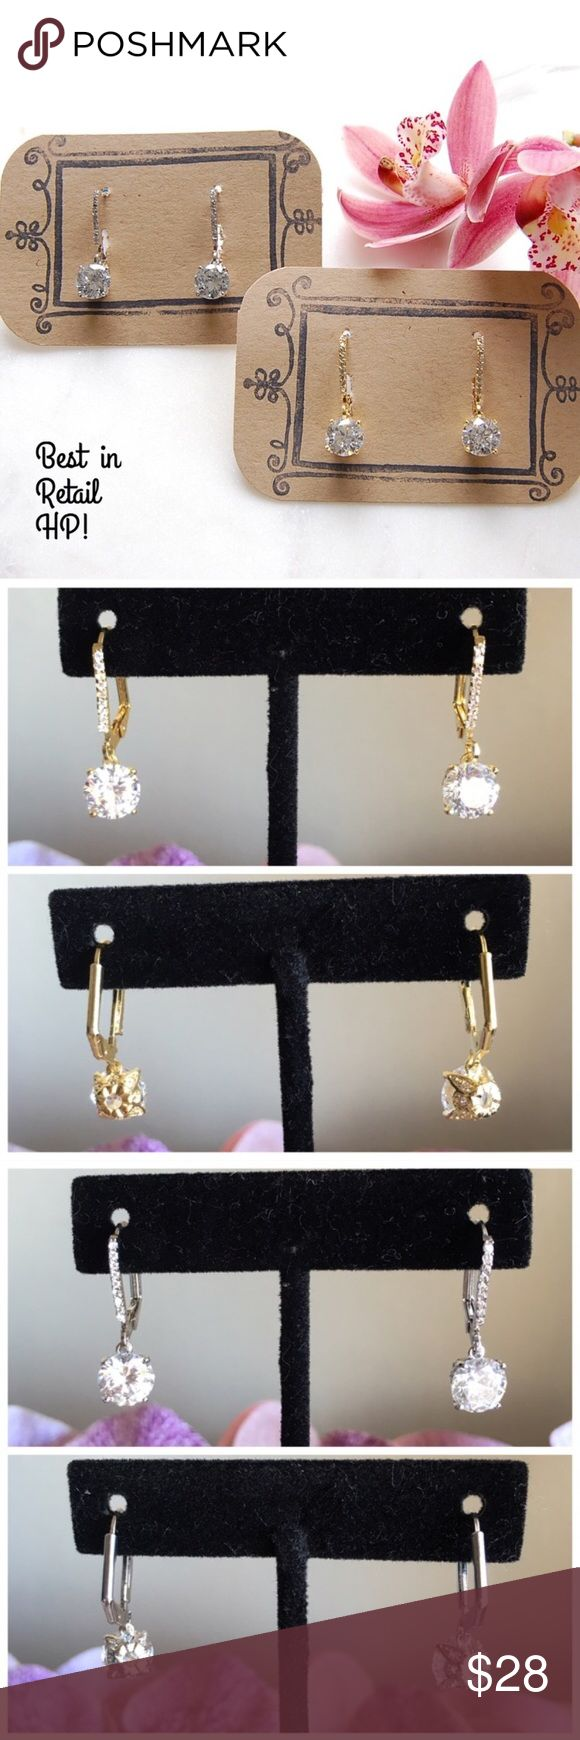 "CZ Dangling Earrings Perfect cubic zirconia earrings for any occasion! Solitaire CZ is 2 karats and hangs from a bar of more CZs. Hangs 1"" long. Available in either gold (1 left) or silver. Price listed is for one pair. Includes box. Price firm unless bundled. {E1629}   Instagram: @bringingupsuns Jewelry Earrings"